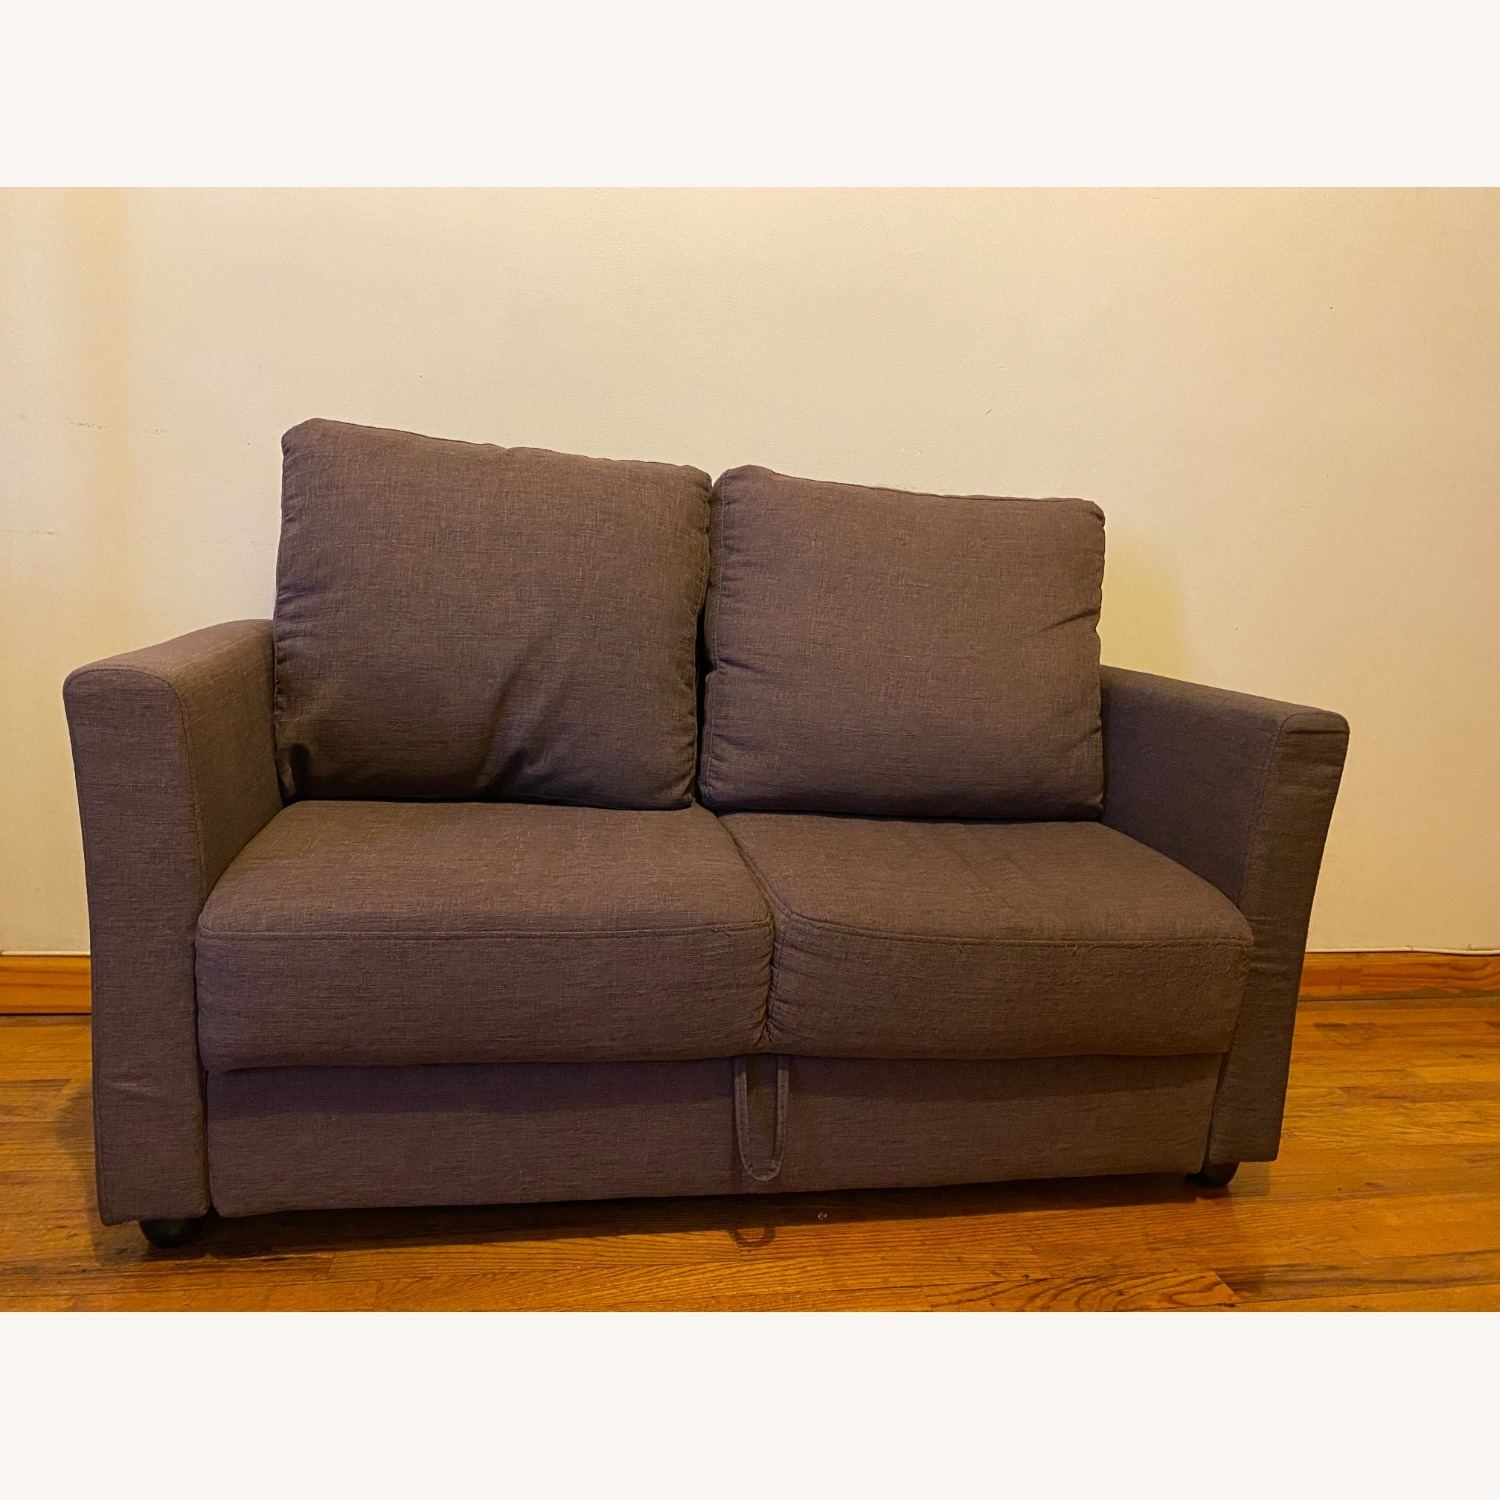 Two Seater Sofa with Storage - image-1